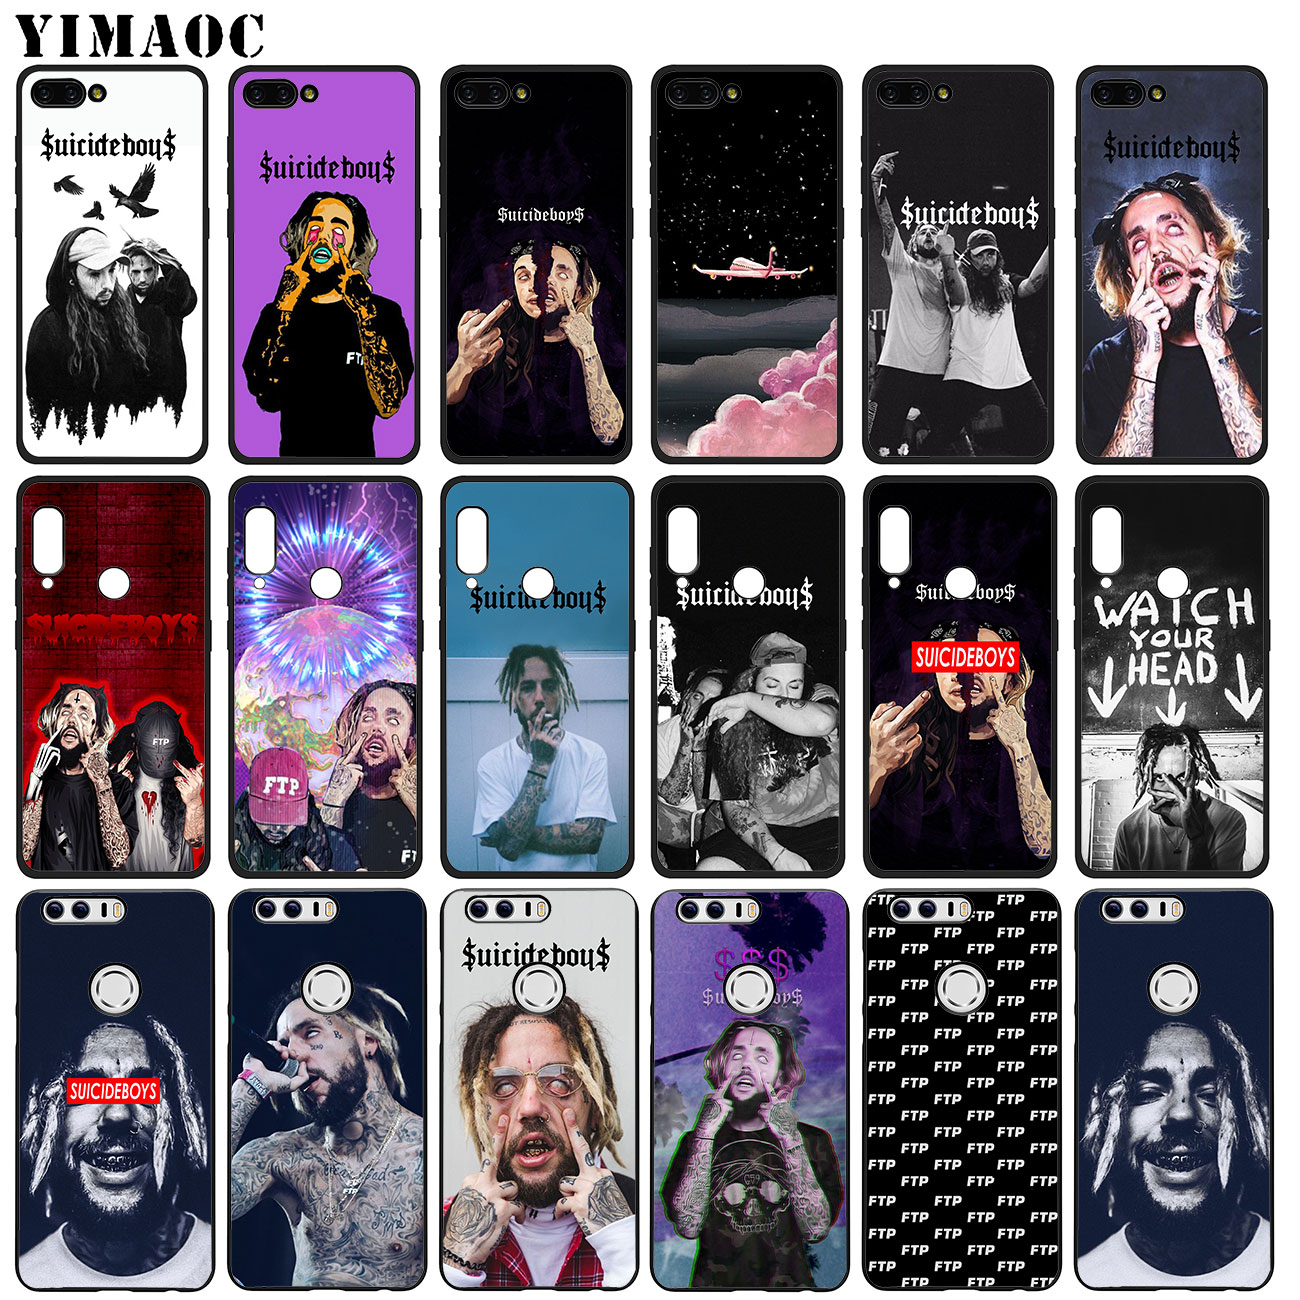 YIMAOC FTP $uicideboy$ uicideboy Suicideboys Soft Case for Huawei Honor 20 Pro 8C 8X 8 9 9X 10 Lite 7X 7A Pro